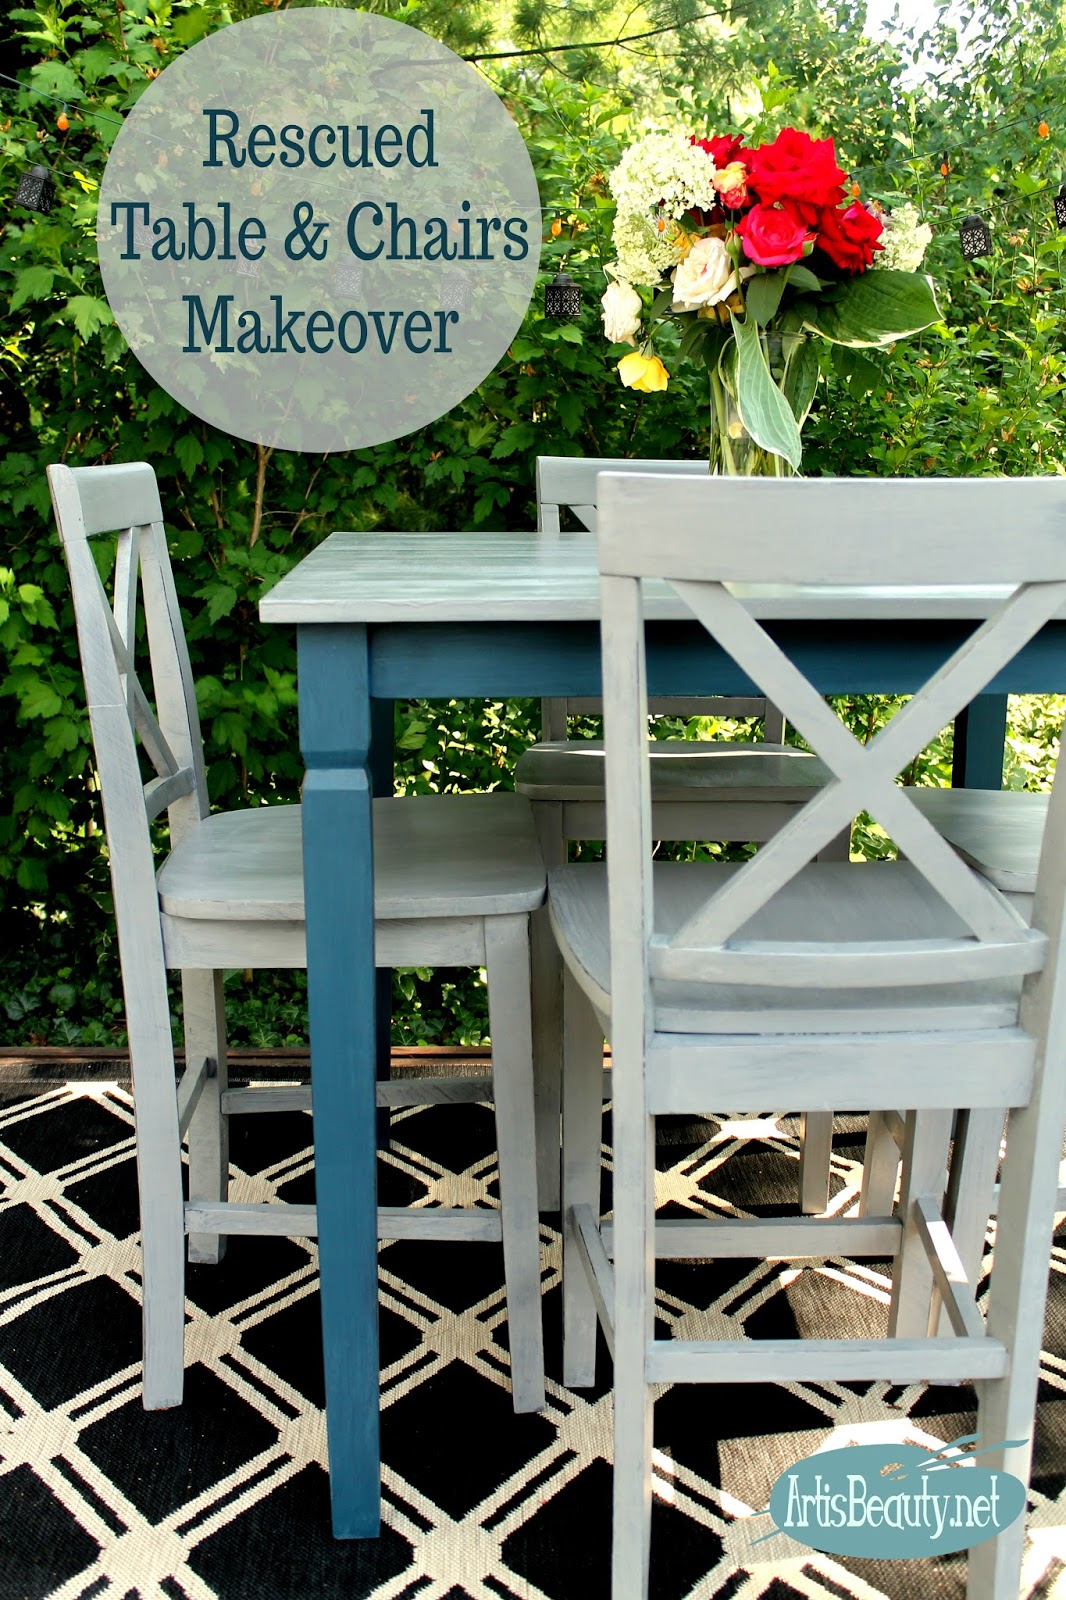 Awesome funky farmhouse boho chic rescued table and chairs painted makeover diy bohemian